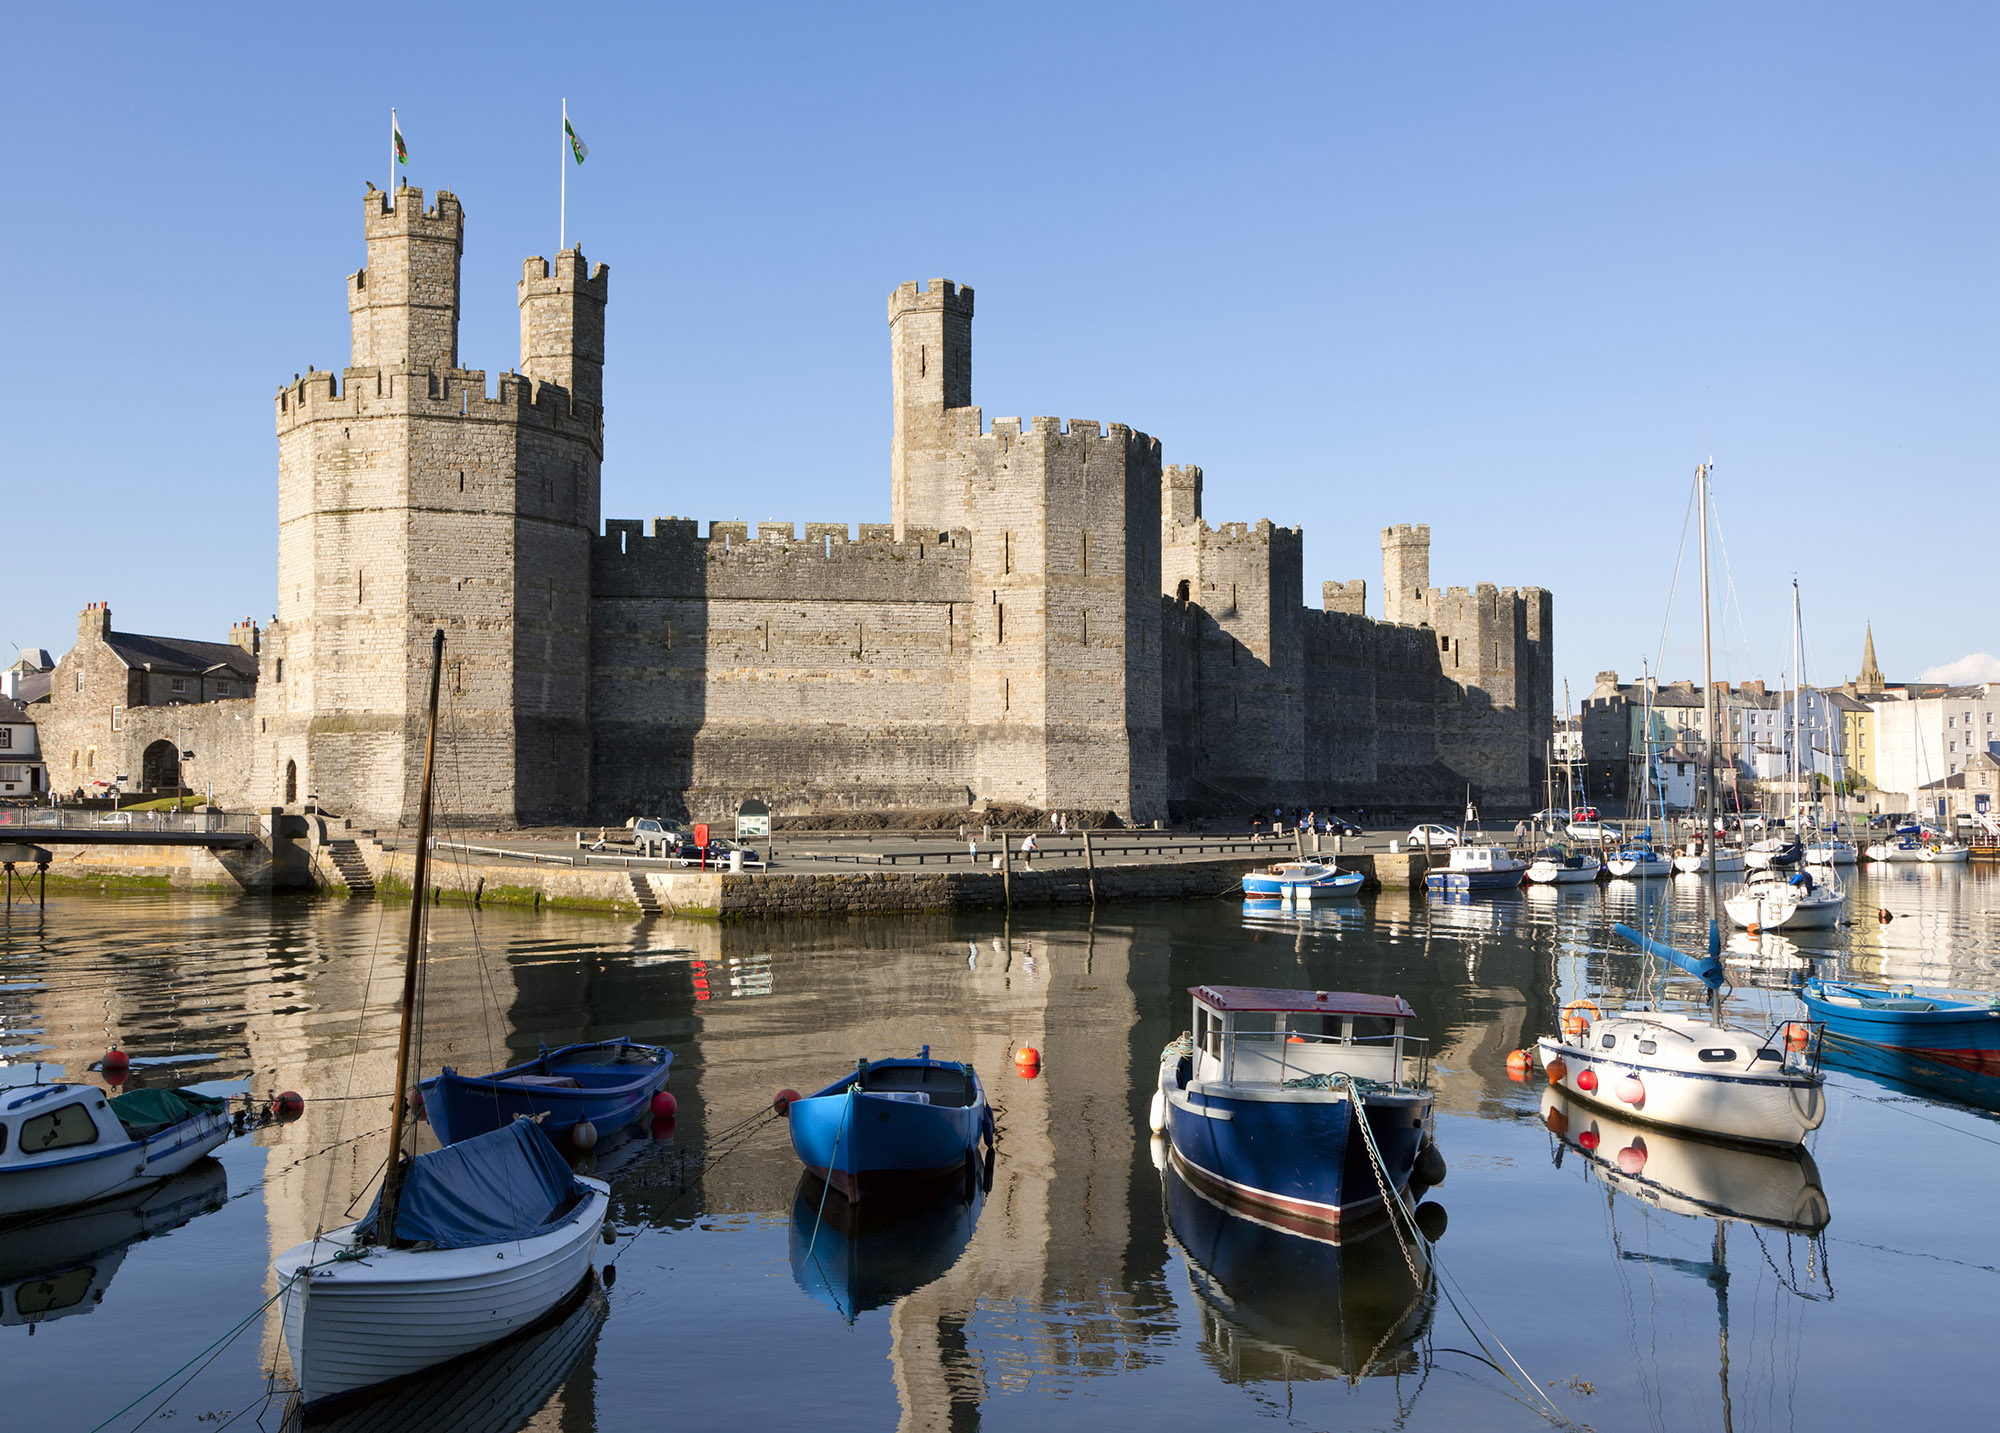 View of Caernarfon Castle from across the river